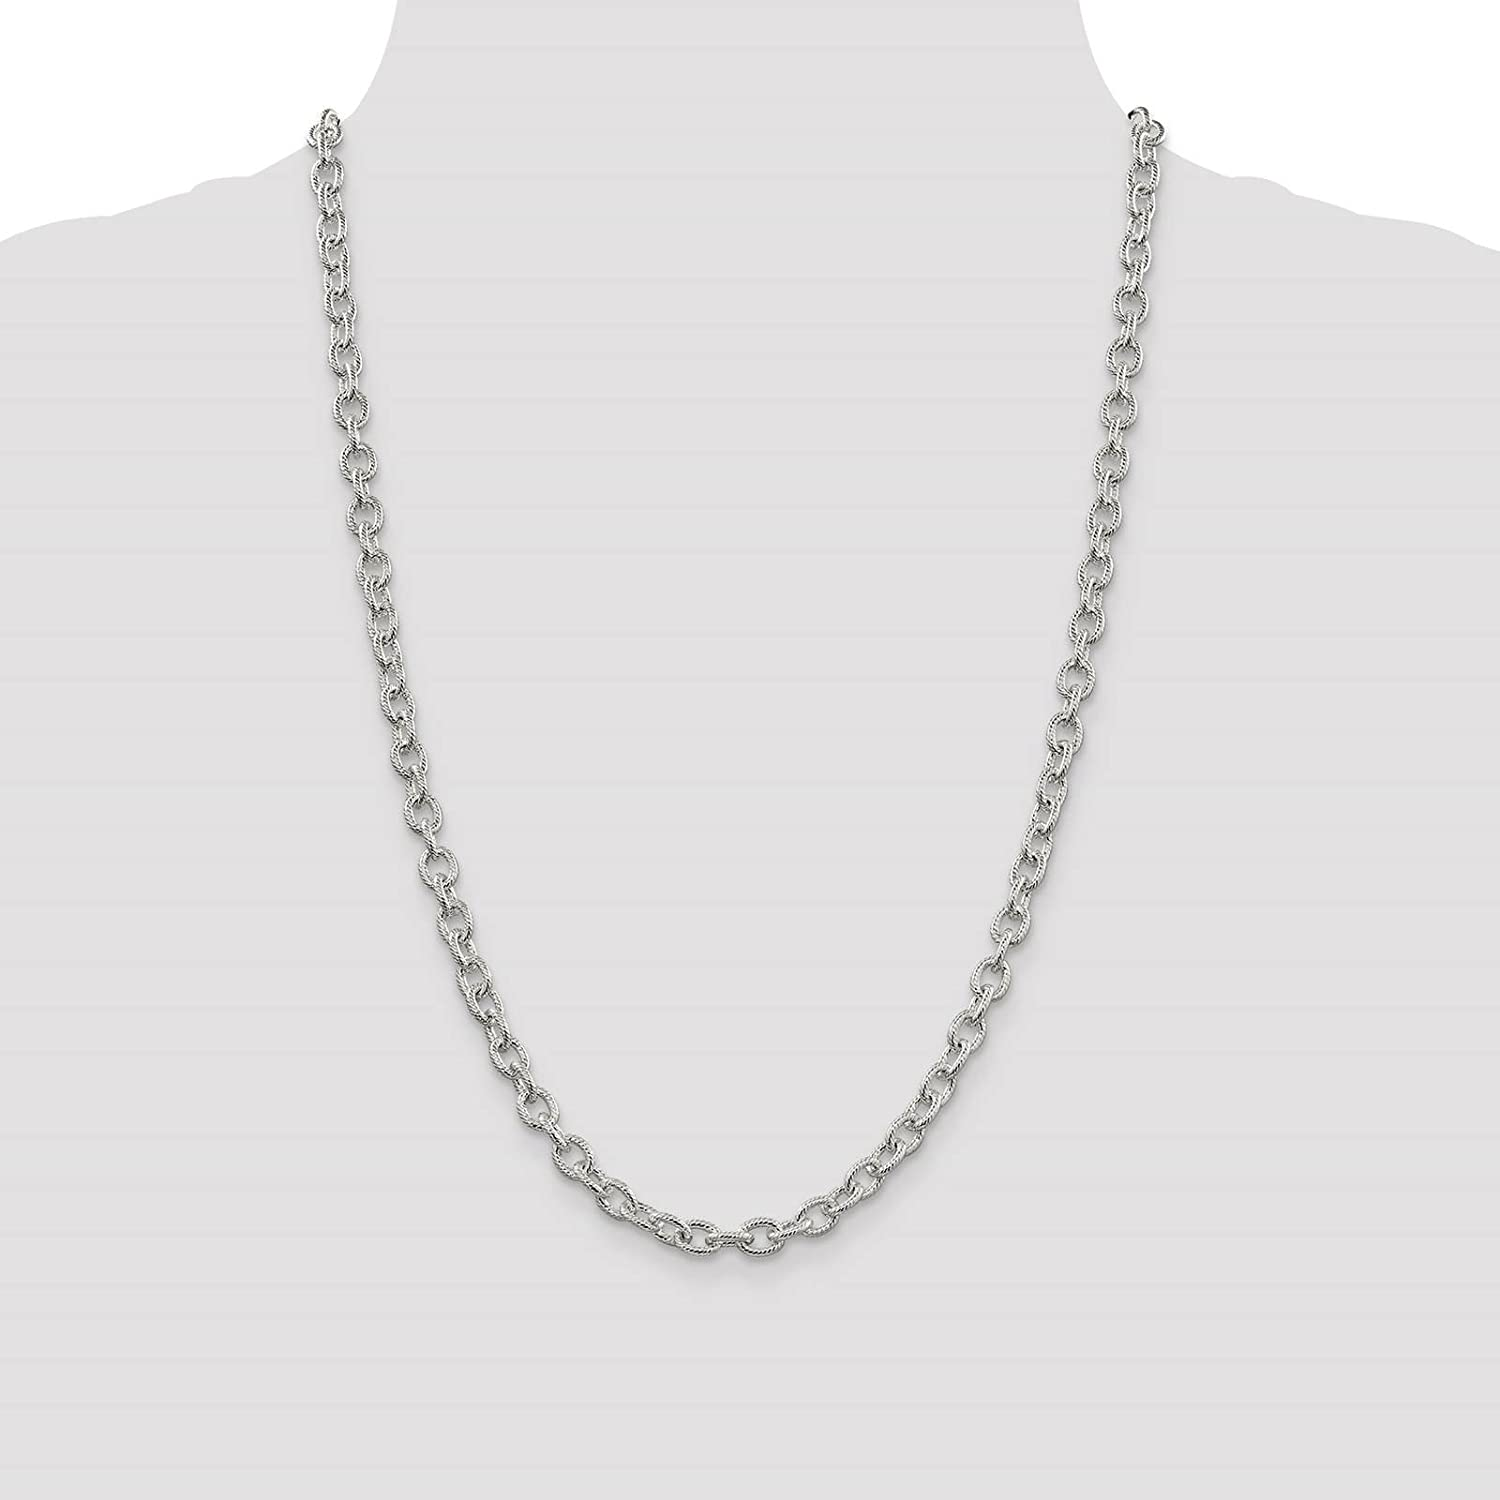 925 Sterling Silver 6.2mm Fancy Textured Rolo Link Chain Necklace 7-30